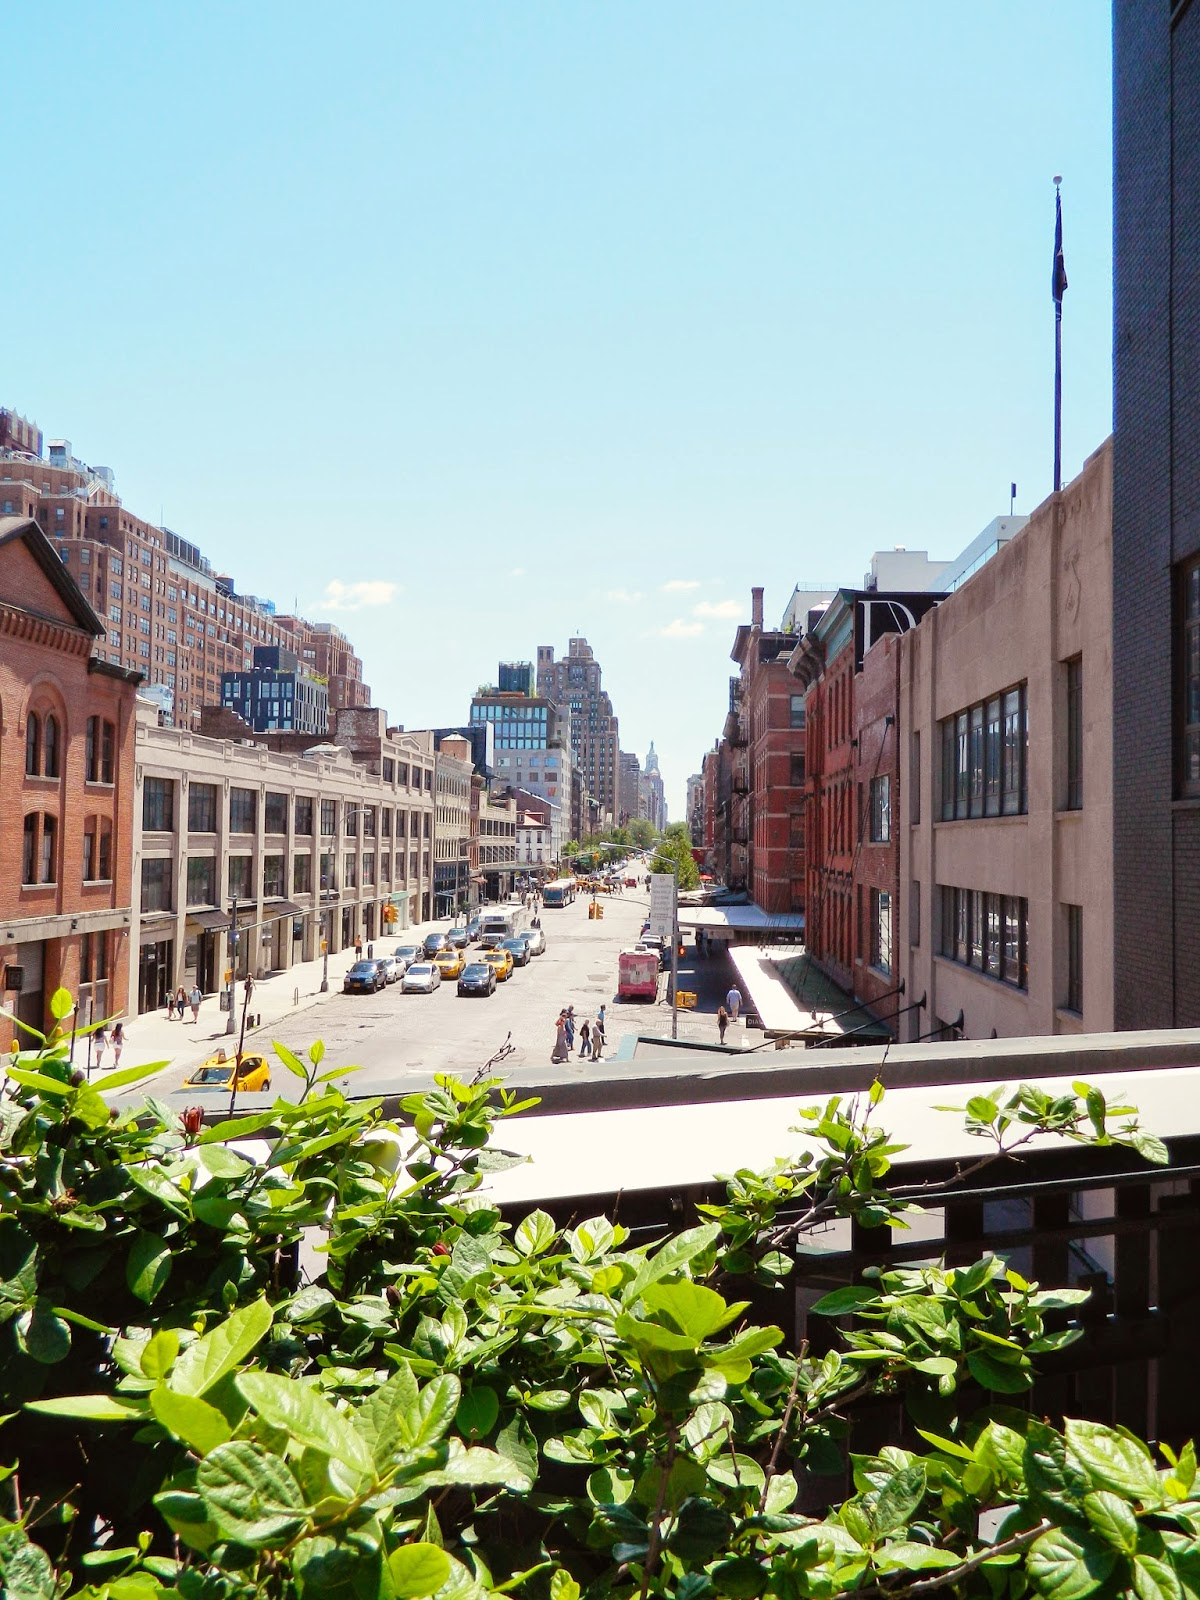 new york city high line of buildings pretty brown horse old industrial buildings yellow cabs perspective city